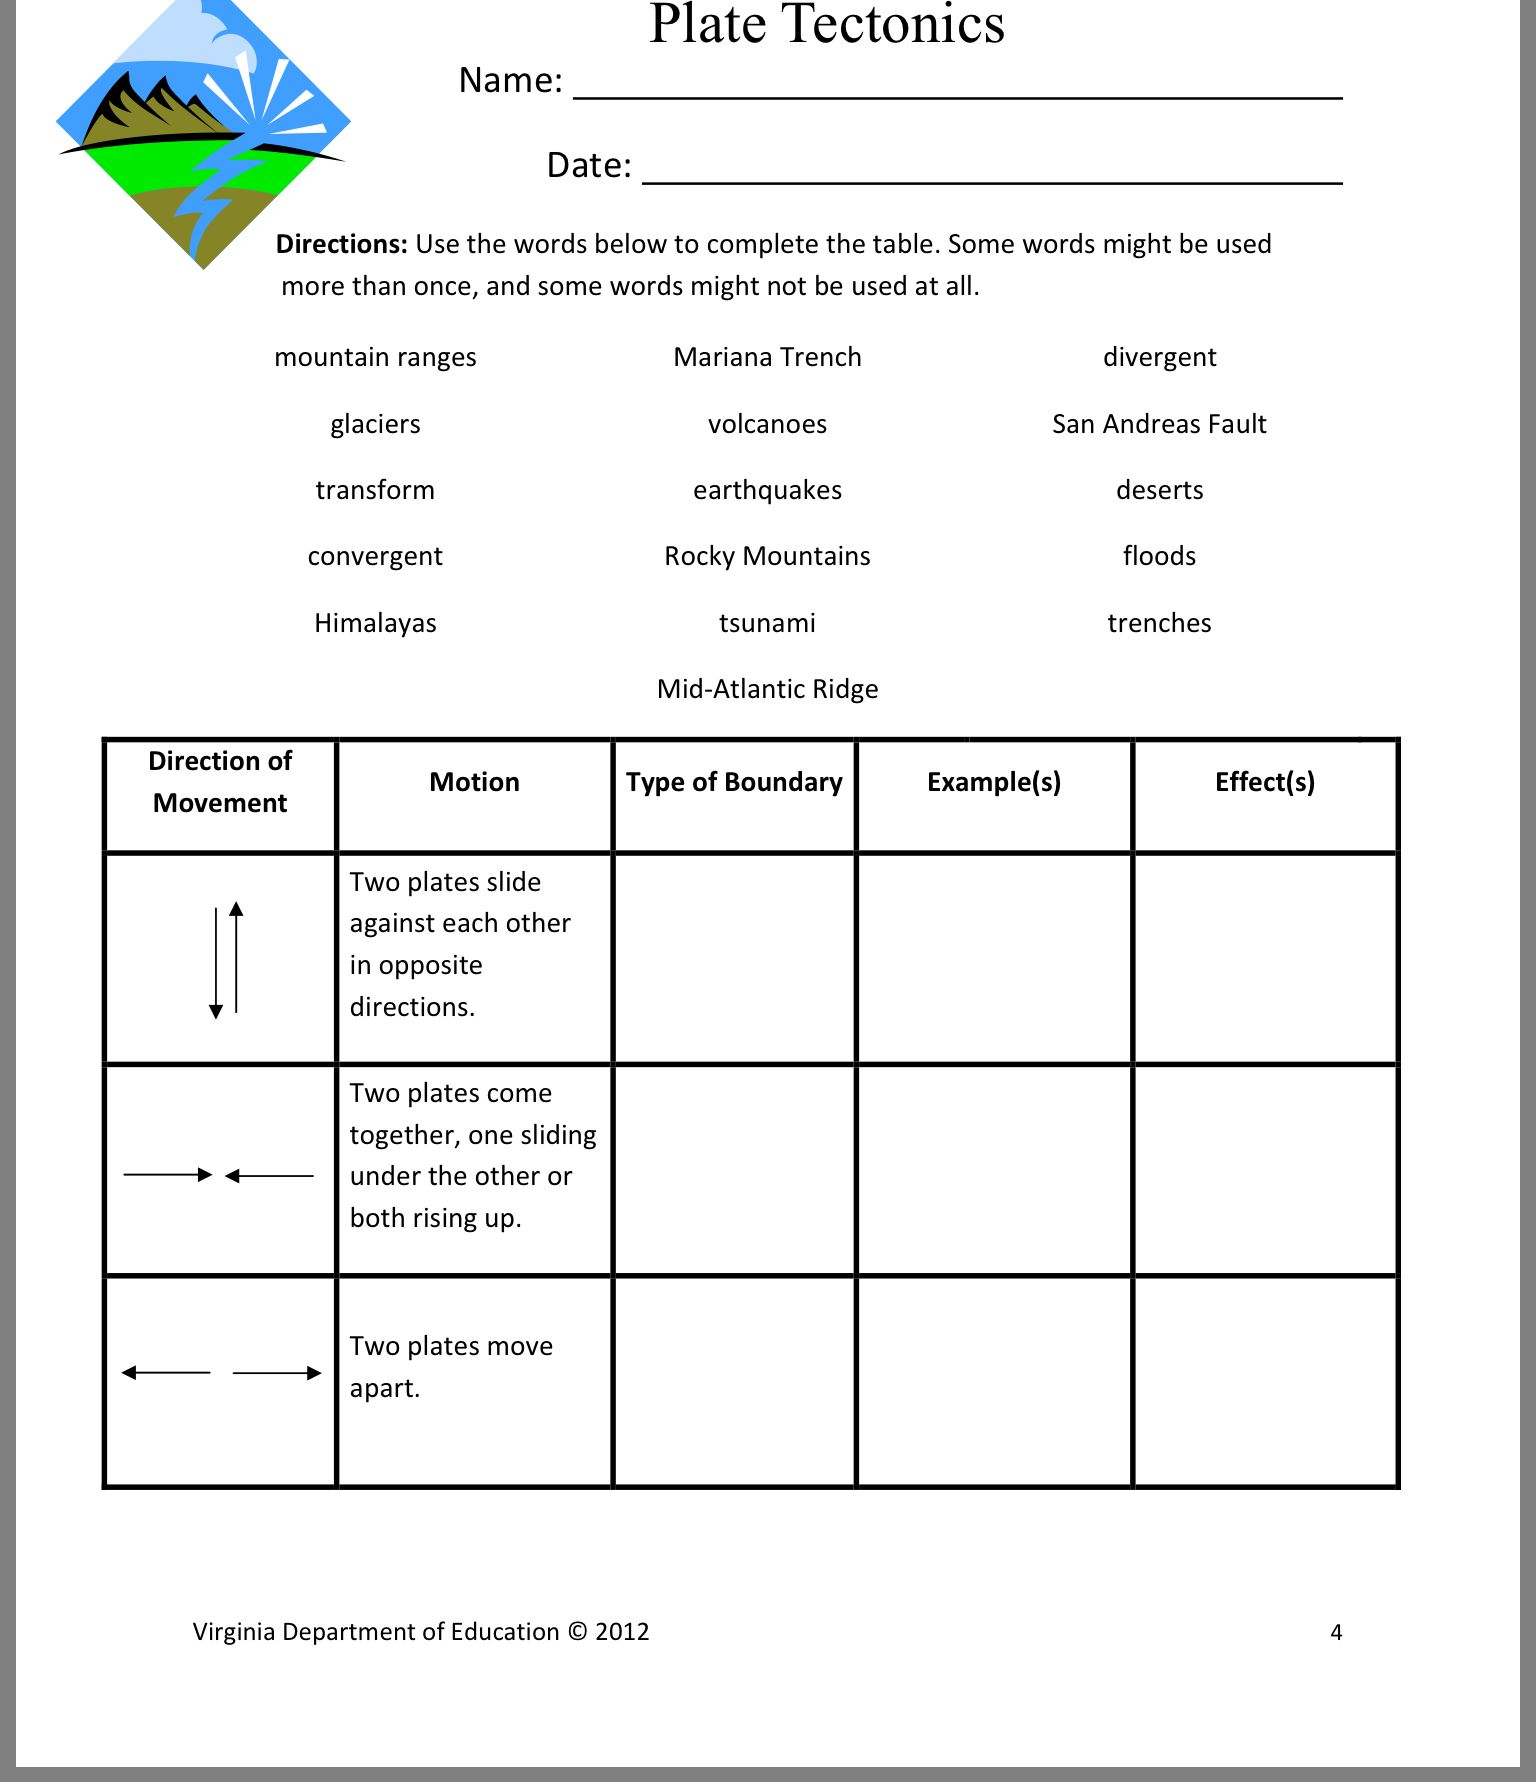 Pin By Melody Wolfe On Plate Techtonics Earth Science Lessons Earth Science Middle School Earth And Space Science